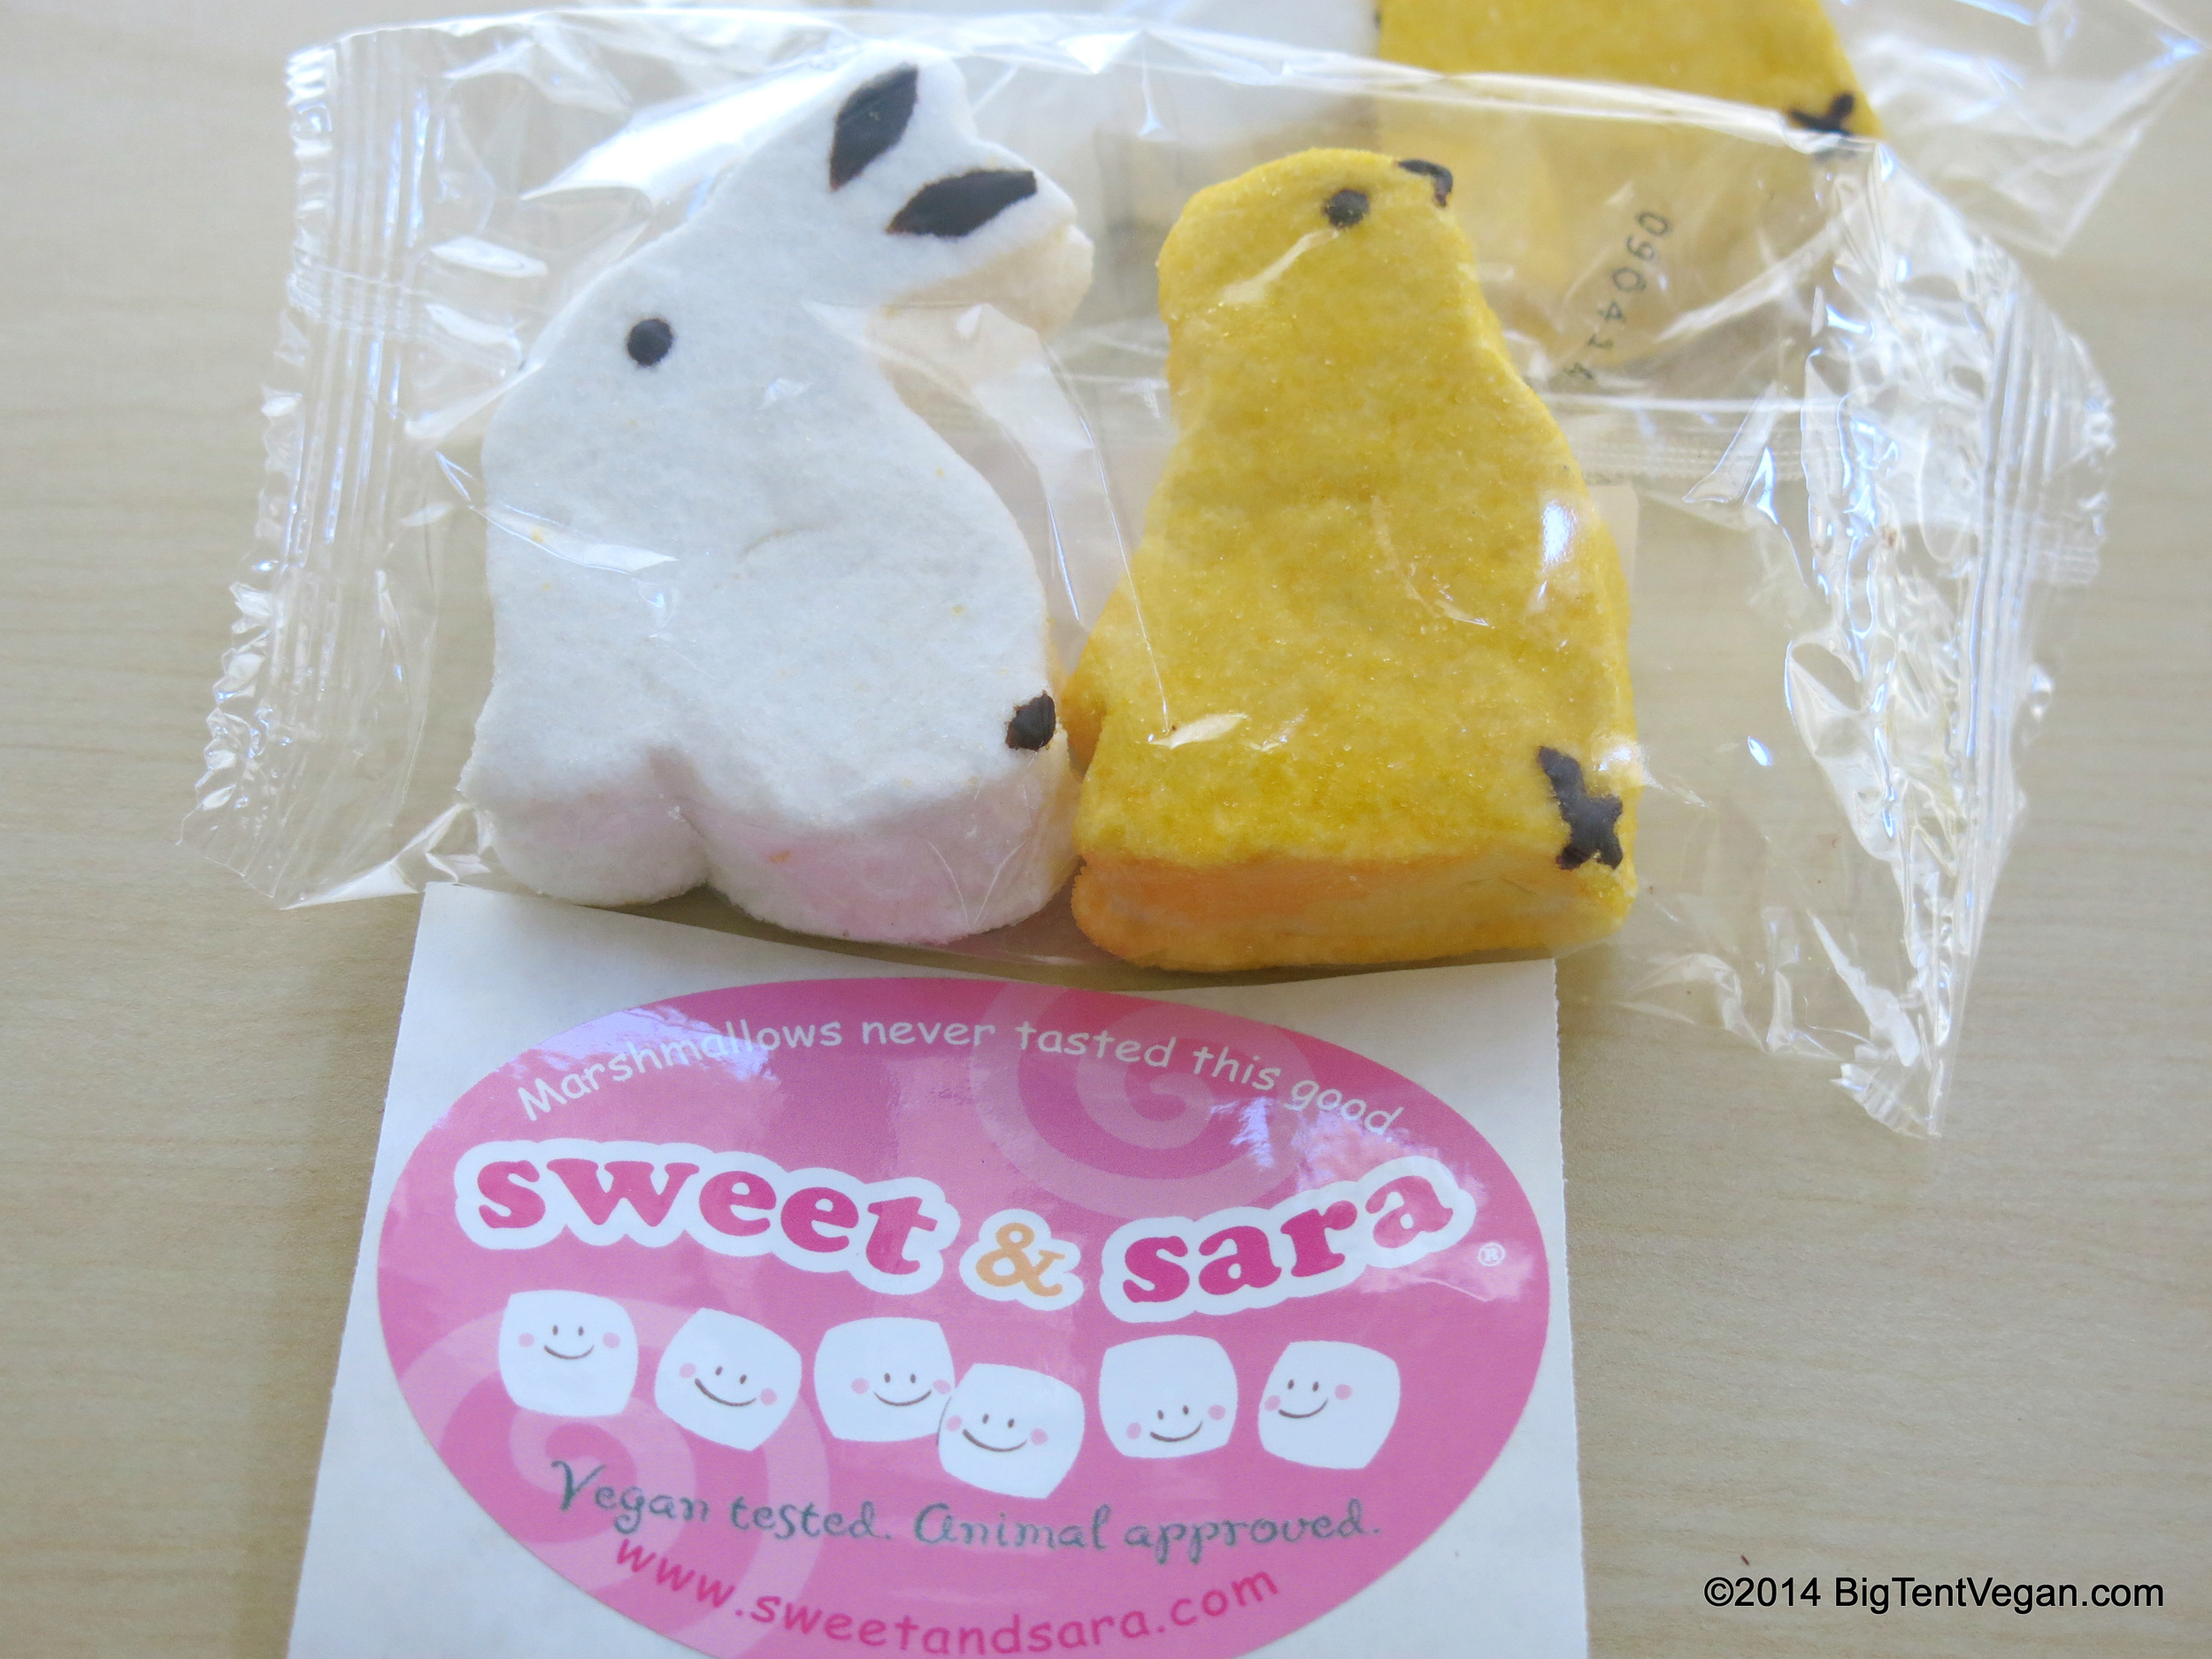 Skipper the Bunny and Sunny the Chick, made by Sweet and Sara (100% vegan company) out of Long Island City, NY, USA.